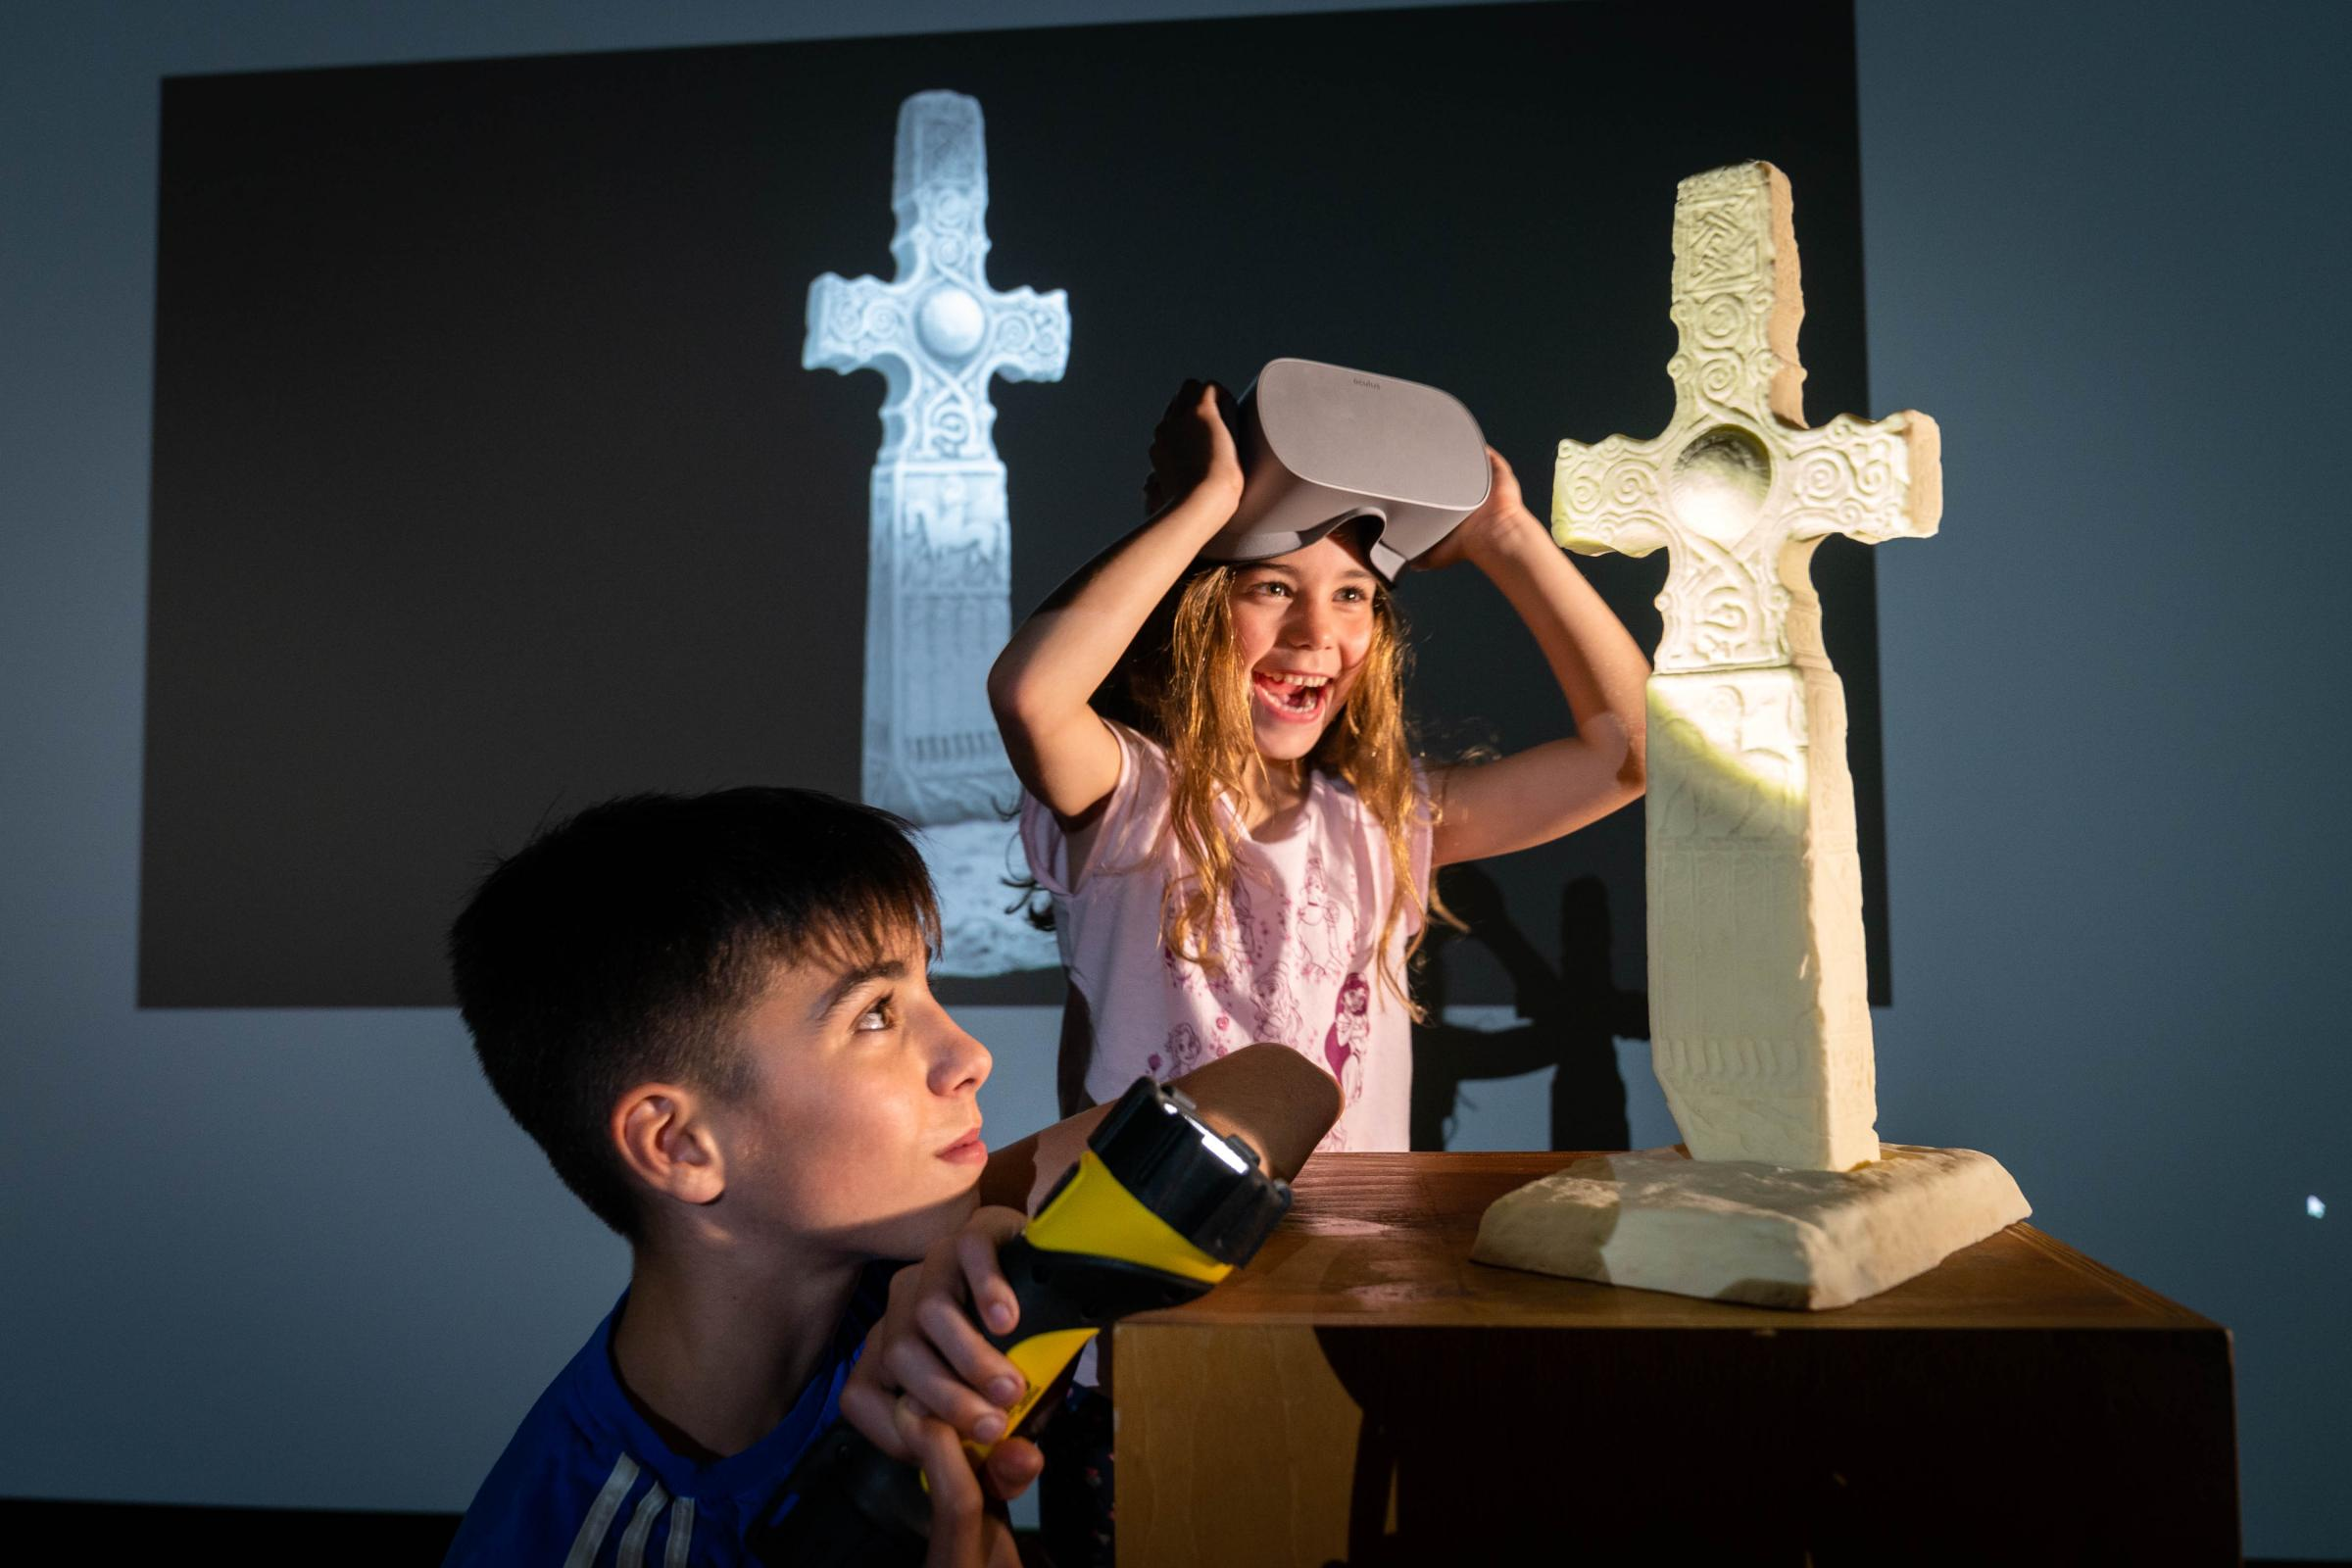 Ben Mitchell (10) and Ellie Mitchell (6) inspecting a 3D printed model of the Duppland Cross.